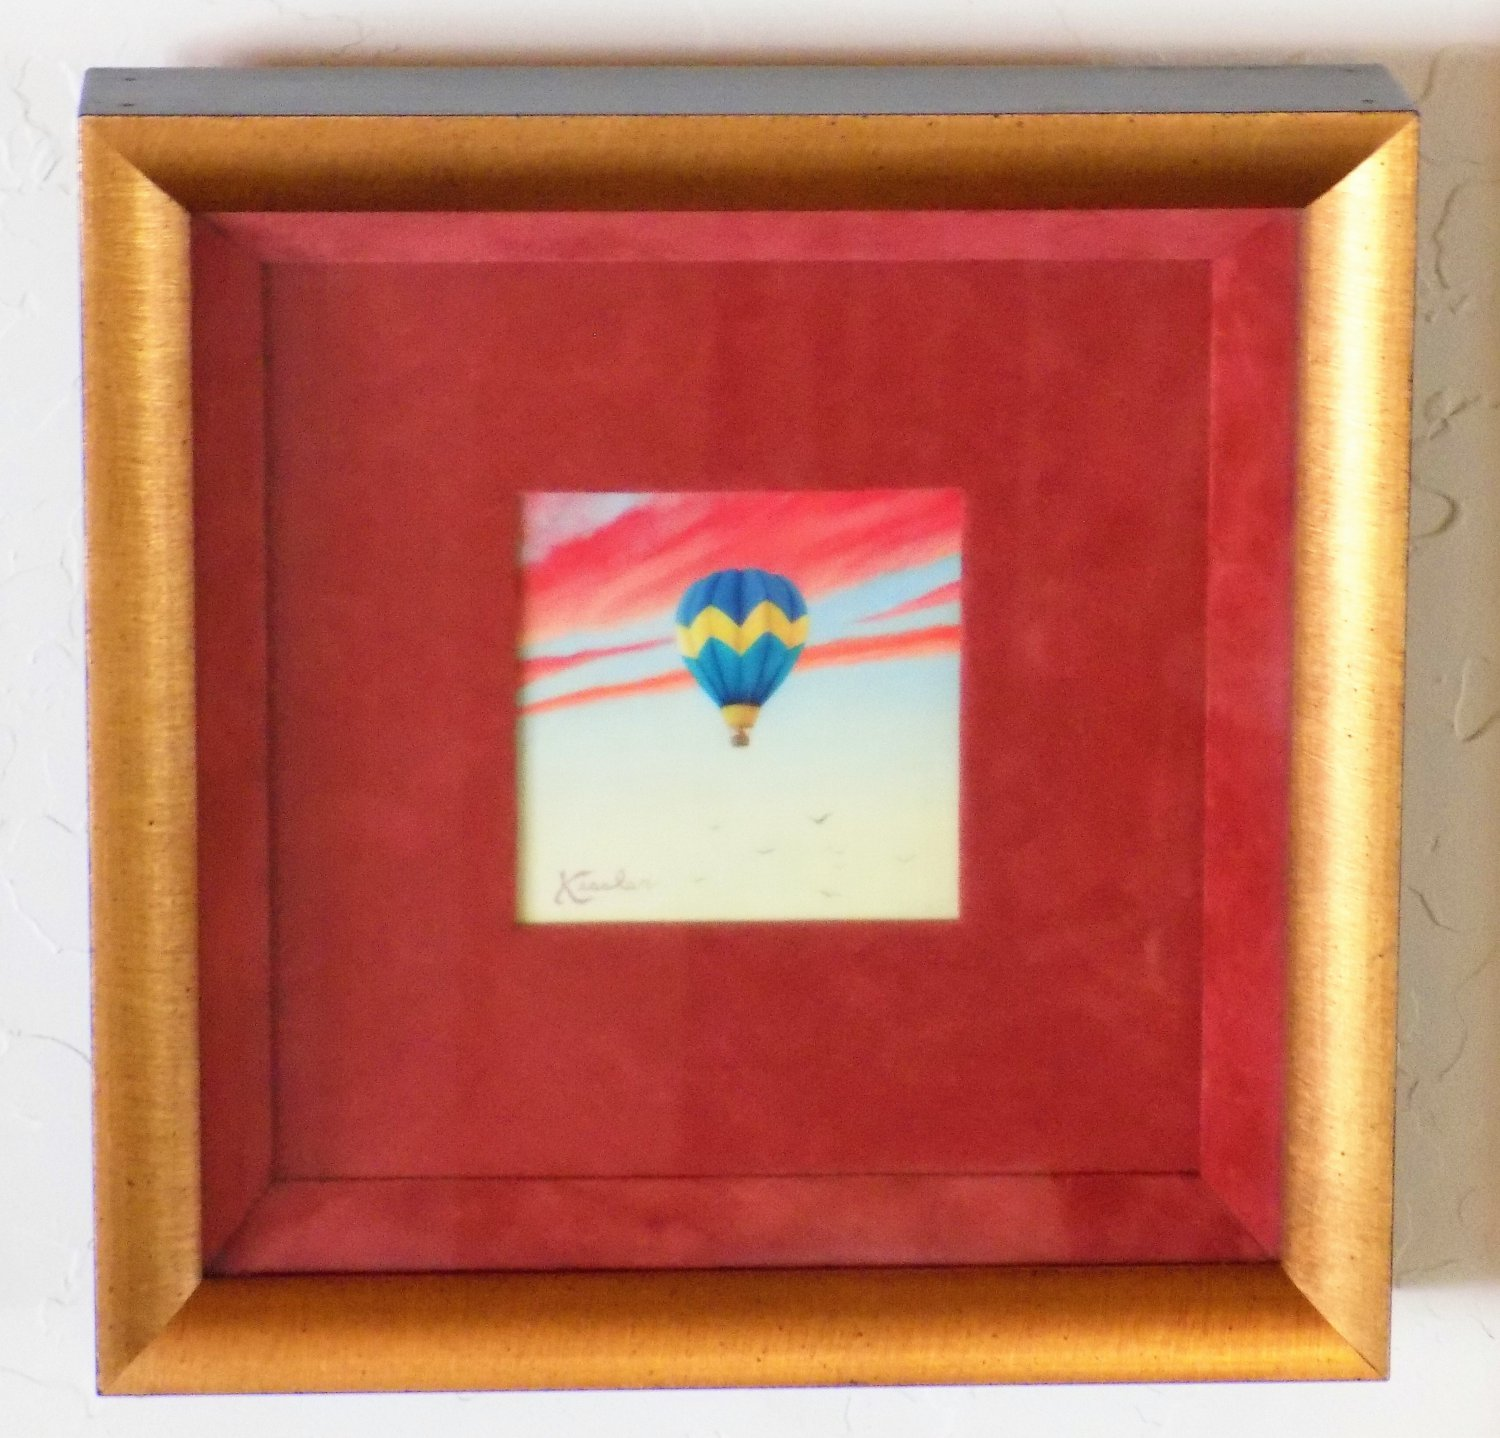 "Mark J. Kessler ""Soaring"" Trompe L'oeil Miniature Oil Painting, Custom Framed/Matted"